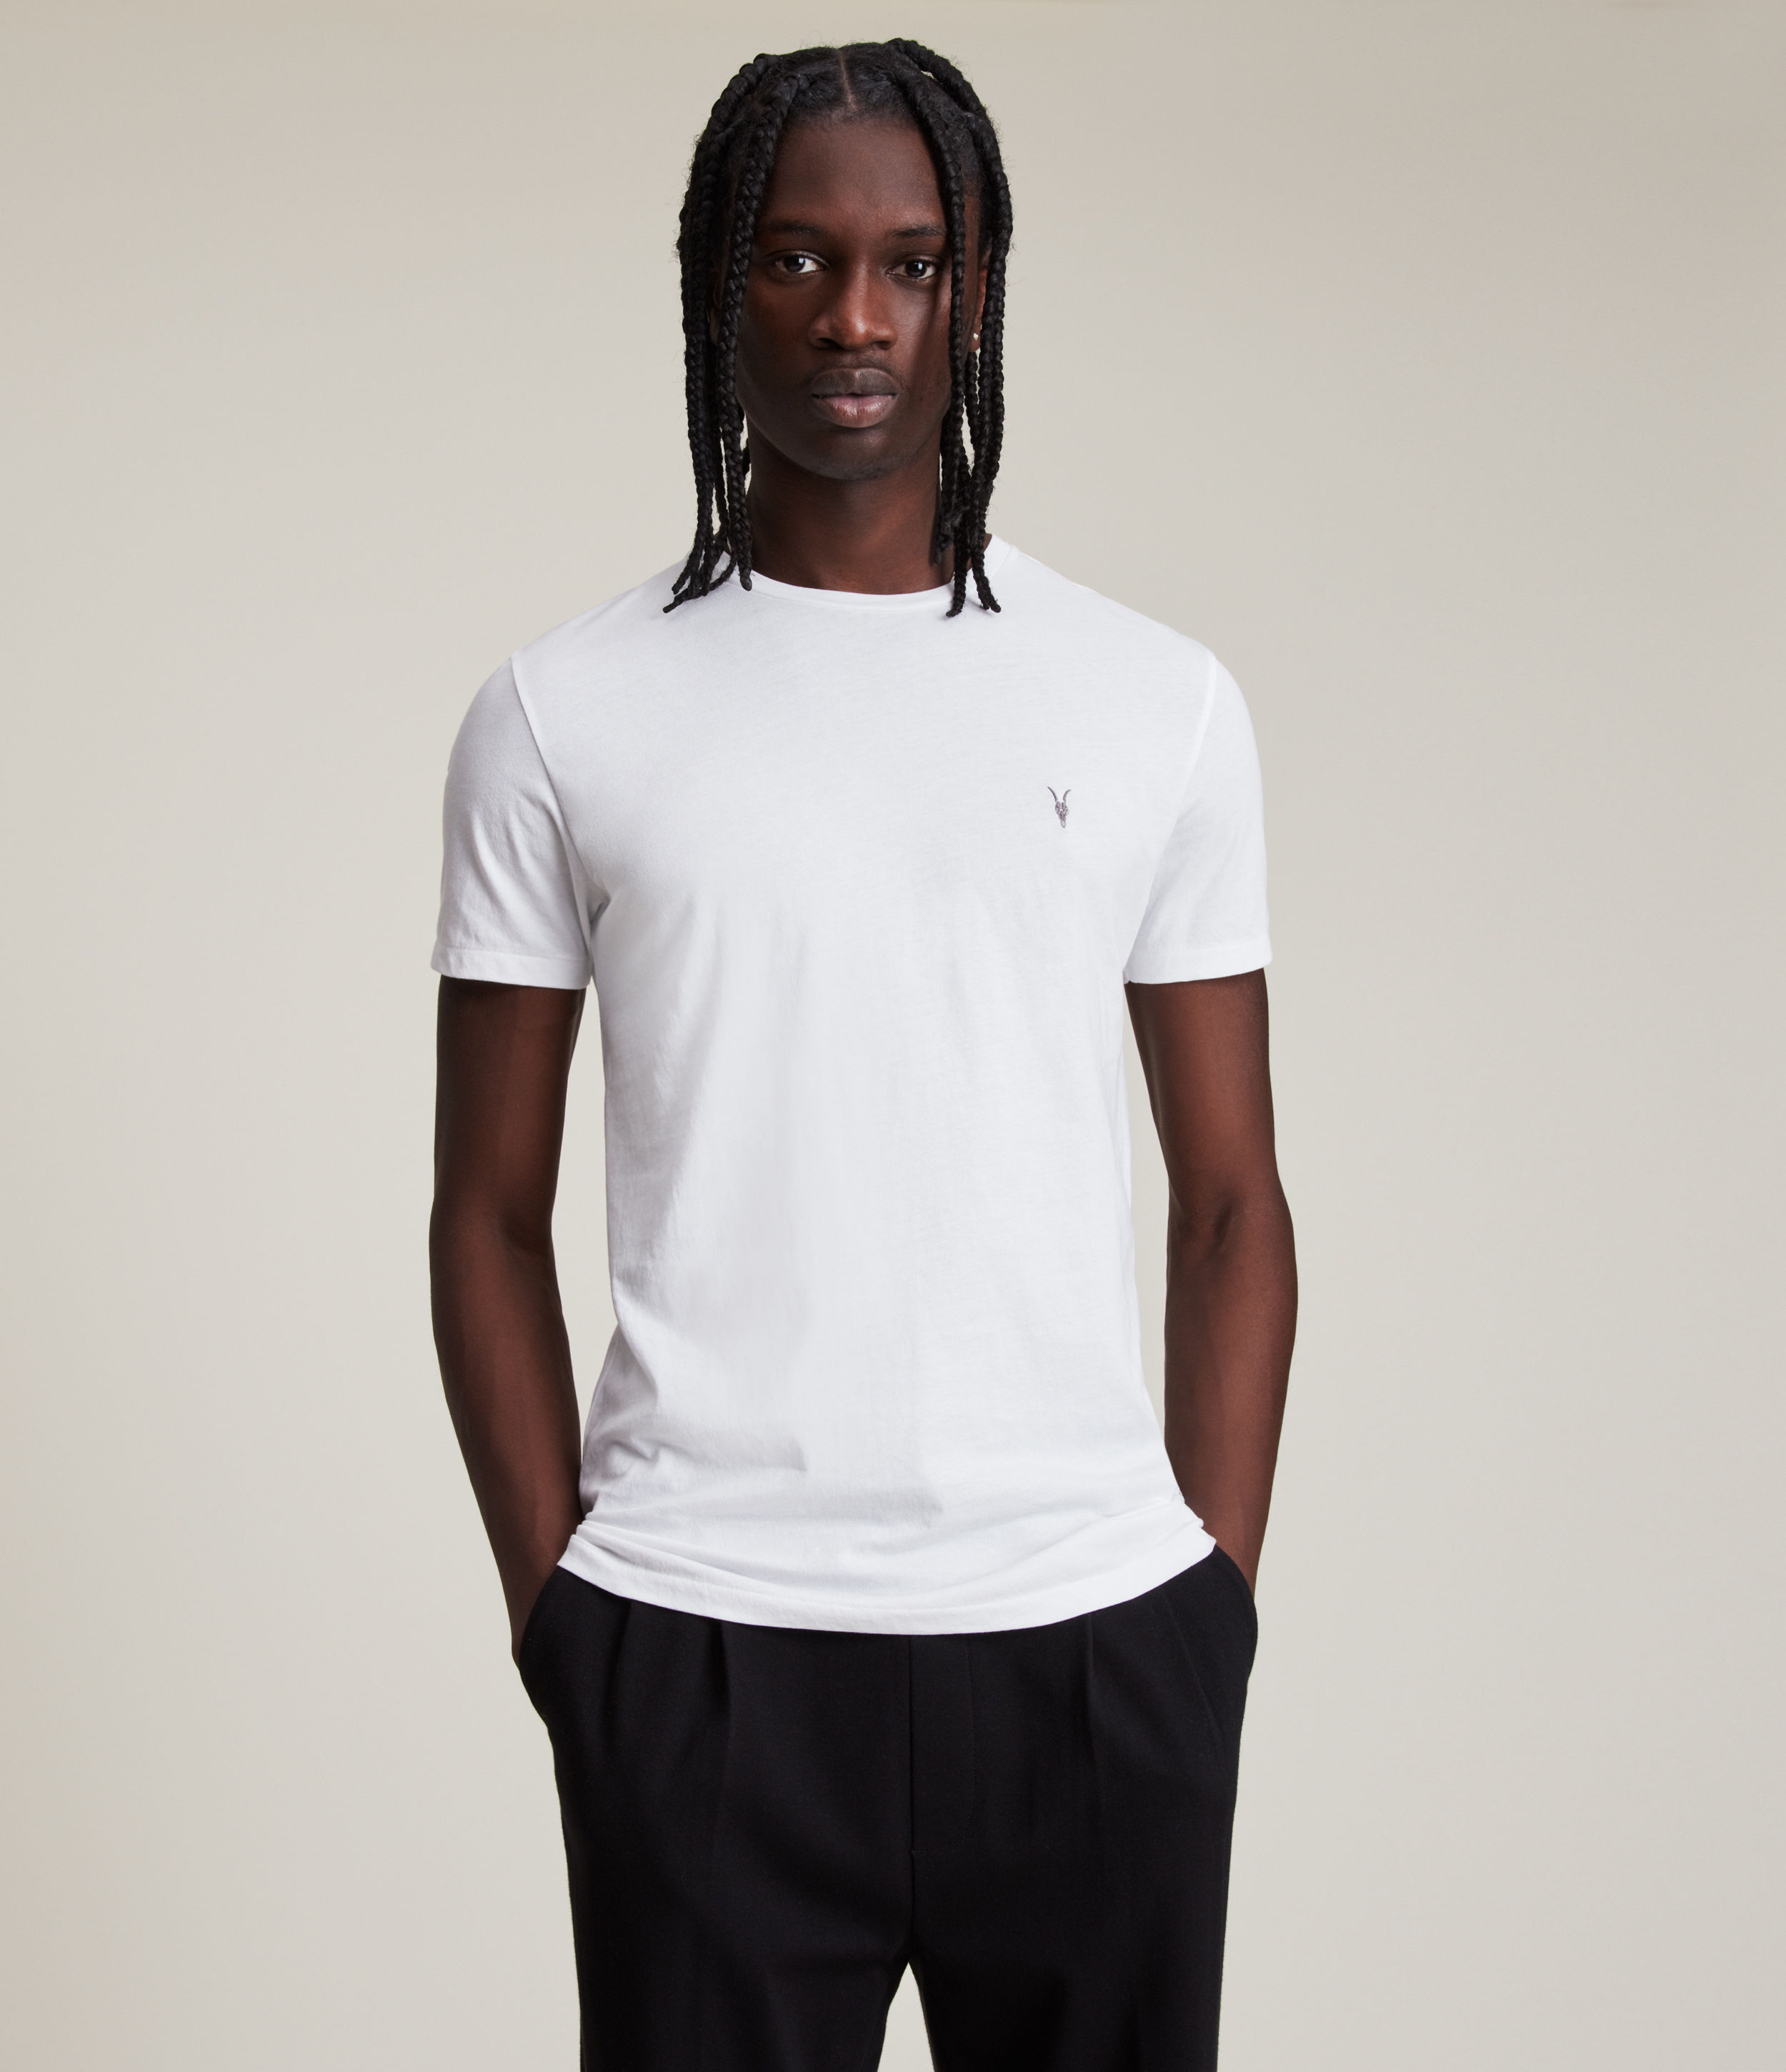 AllSaints Men's Cotton Slim Fit Regular Tonic Crew T-Shirt, White, Size: S